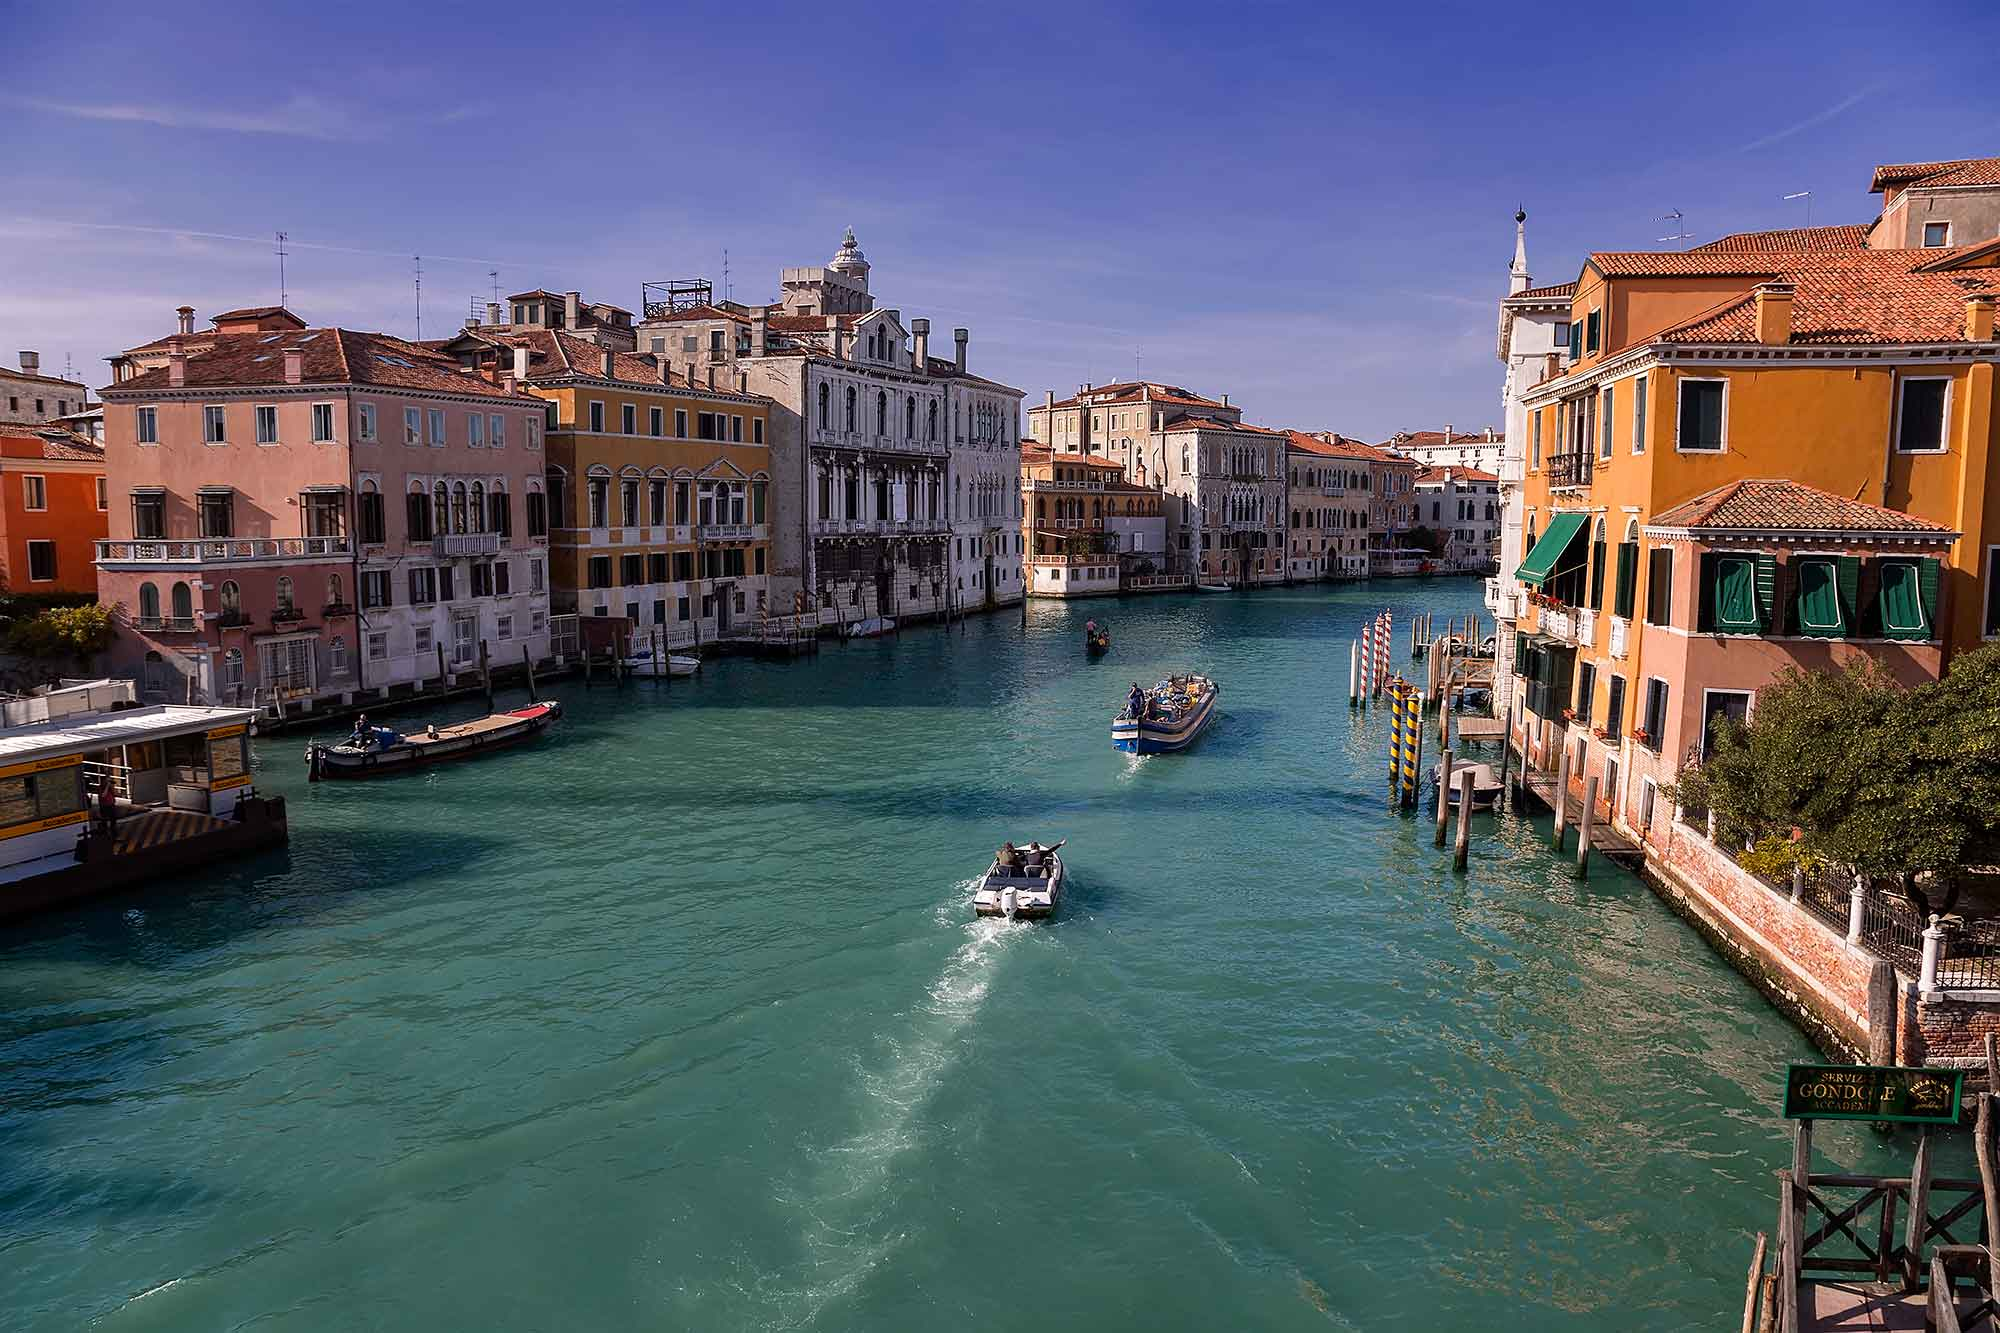 The Grand Canal in Venice, Italy. © Ulli Maier & Nisa Maier